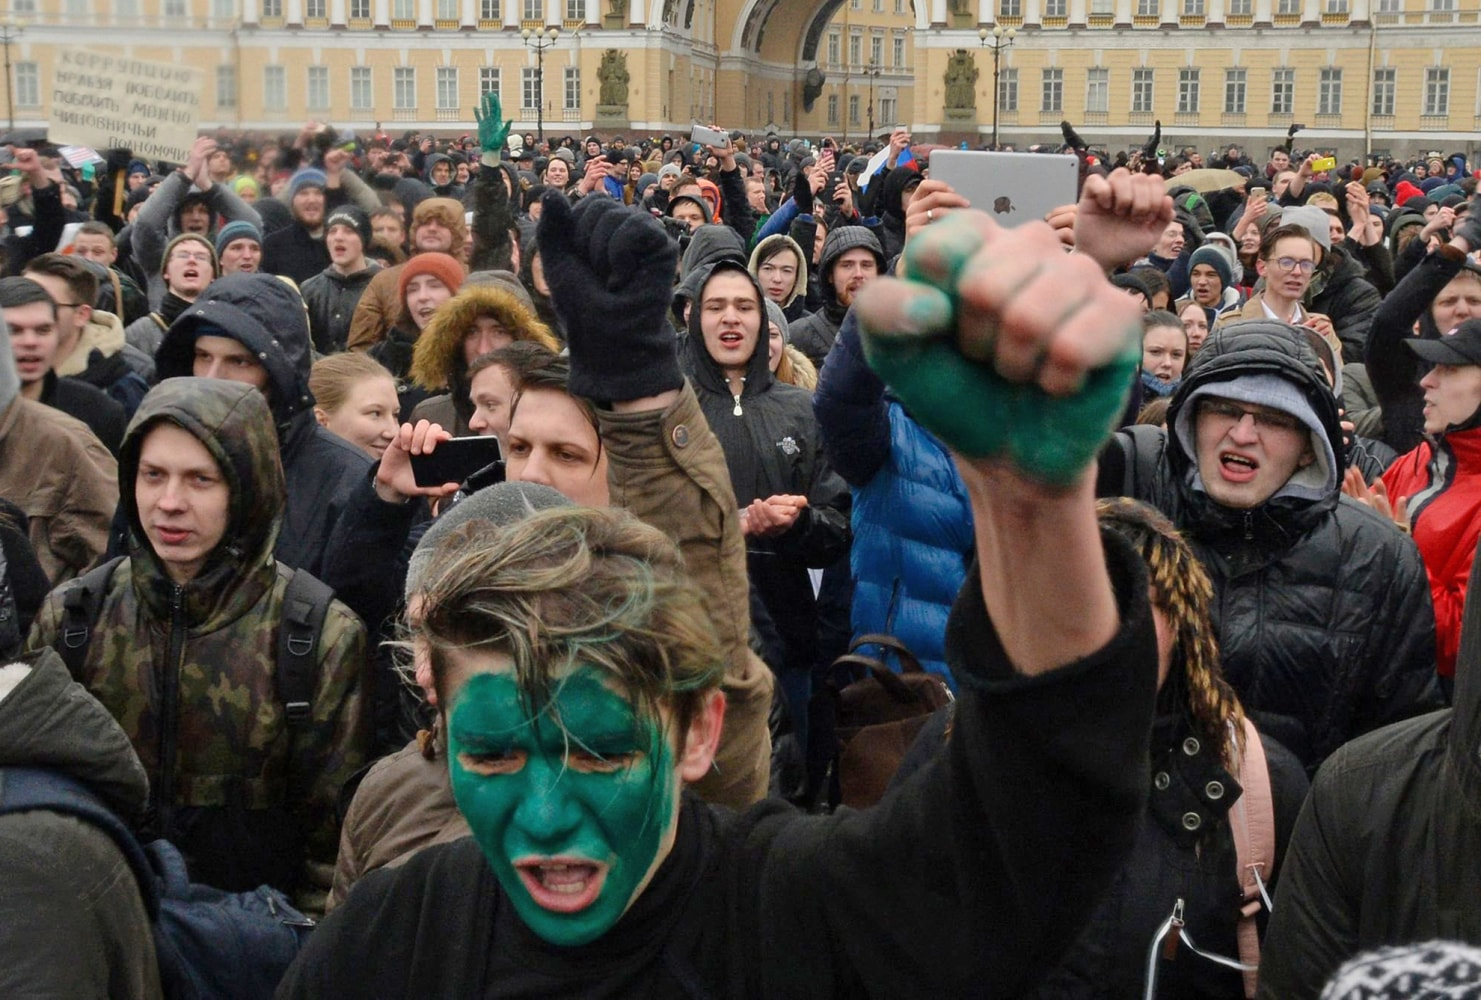 Protest News: Russia's Protests Explained: Why Rubber Ducks, Sneakers